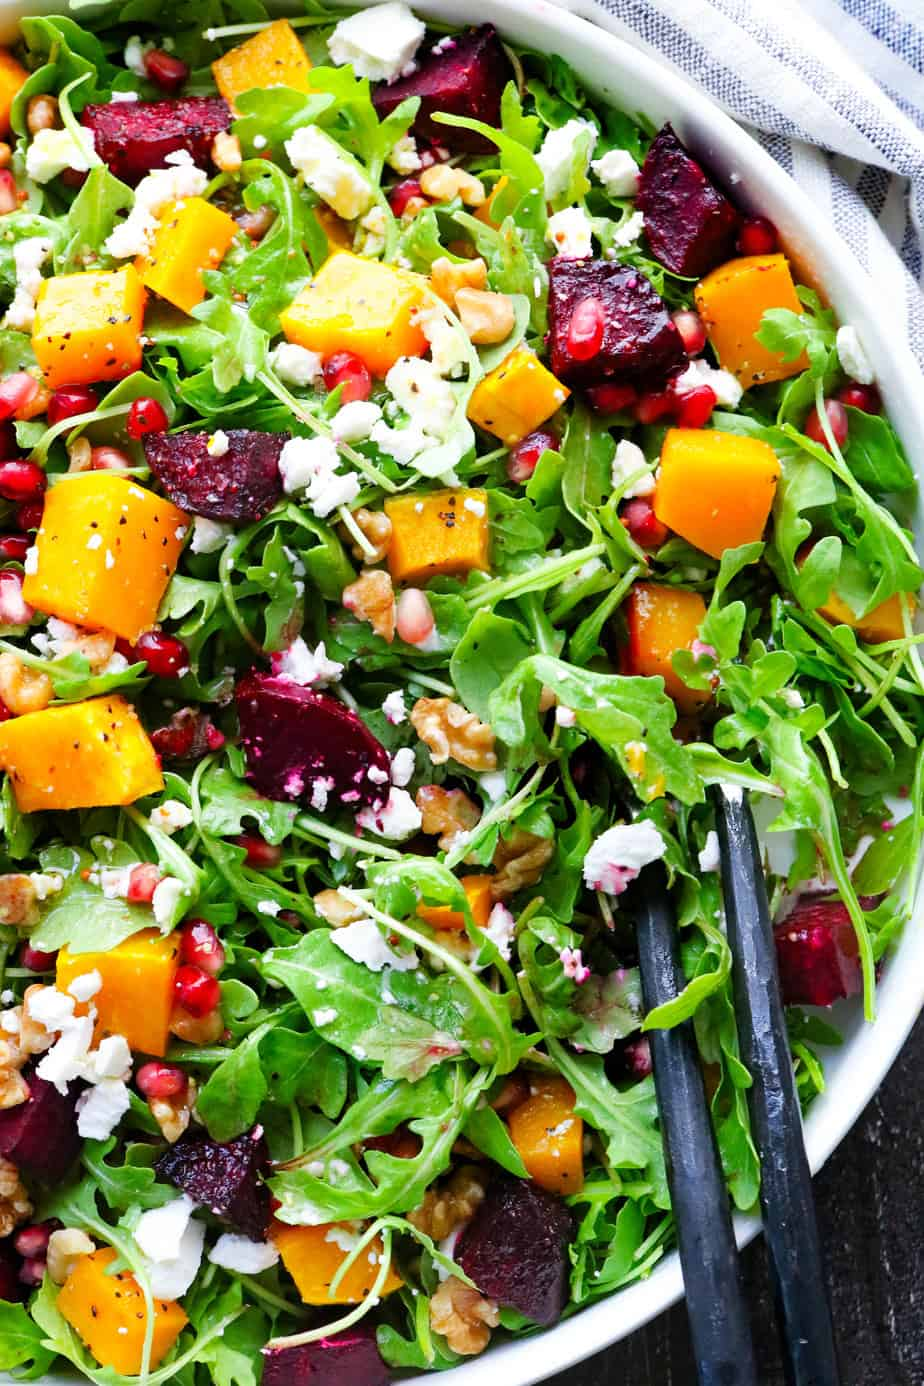 Roasted Beets and Butternut Squash Salad in a bowl.